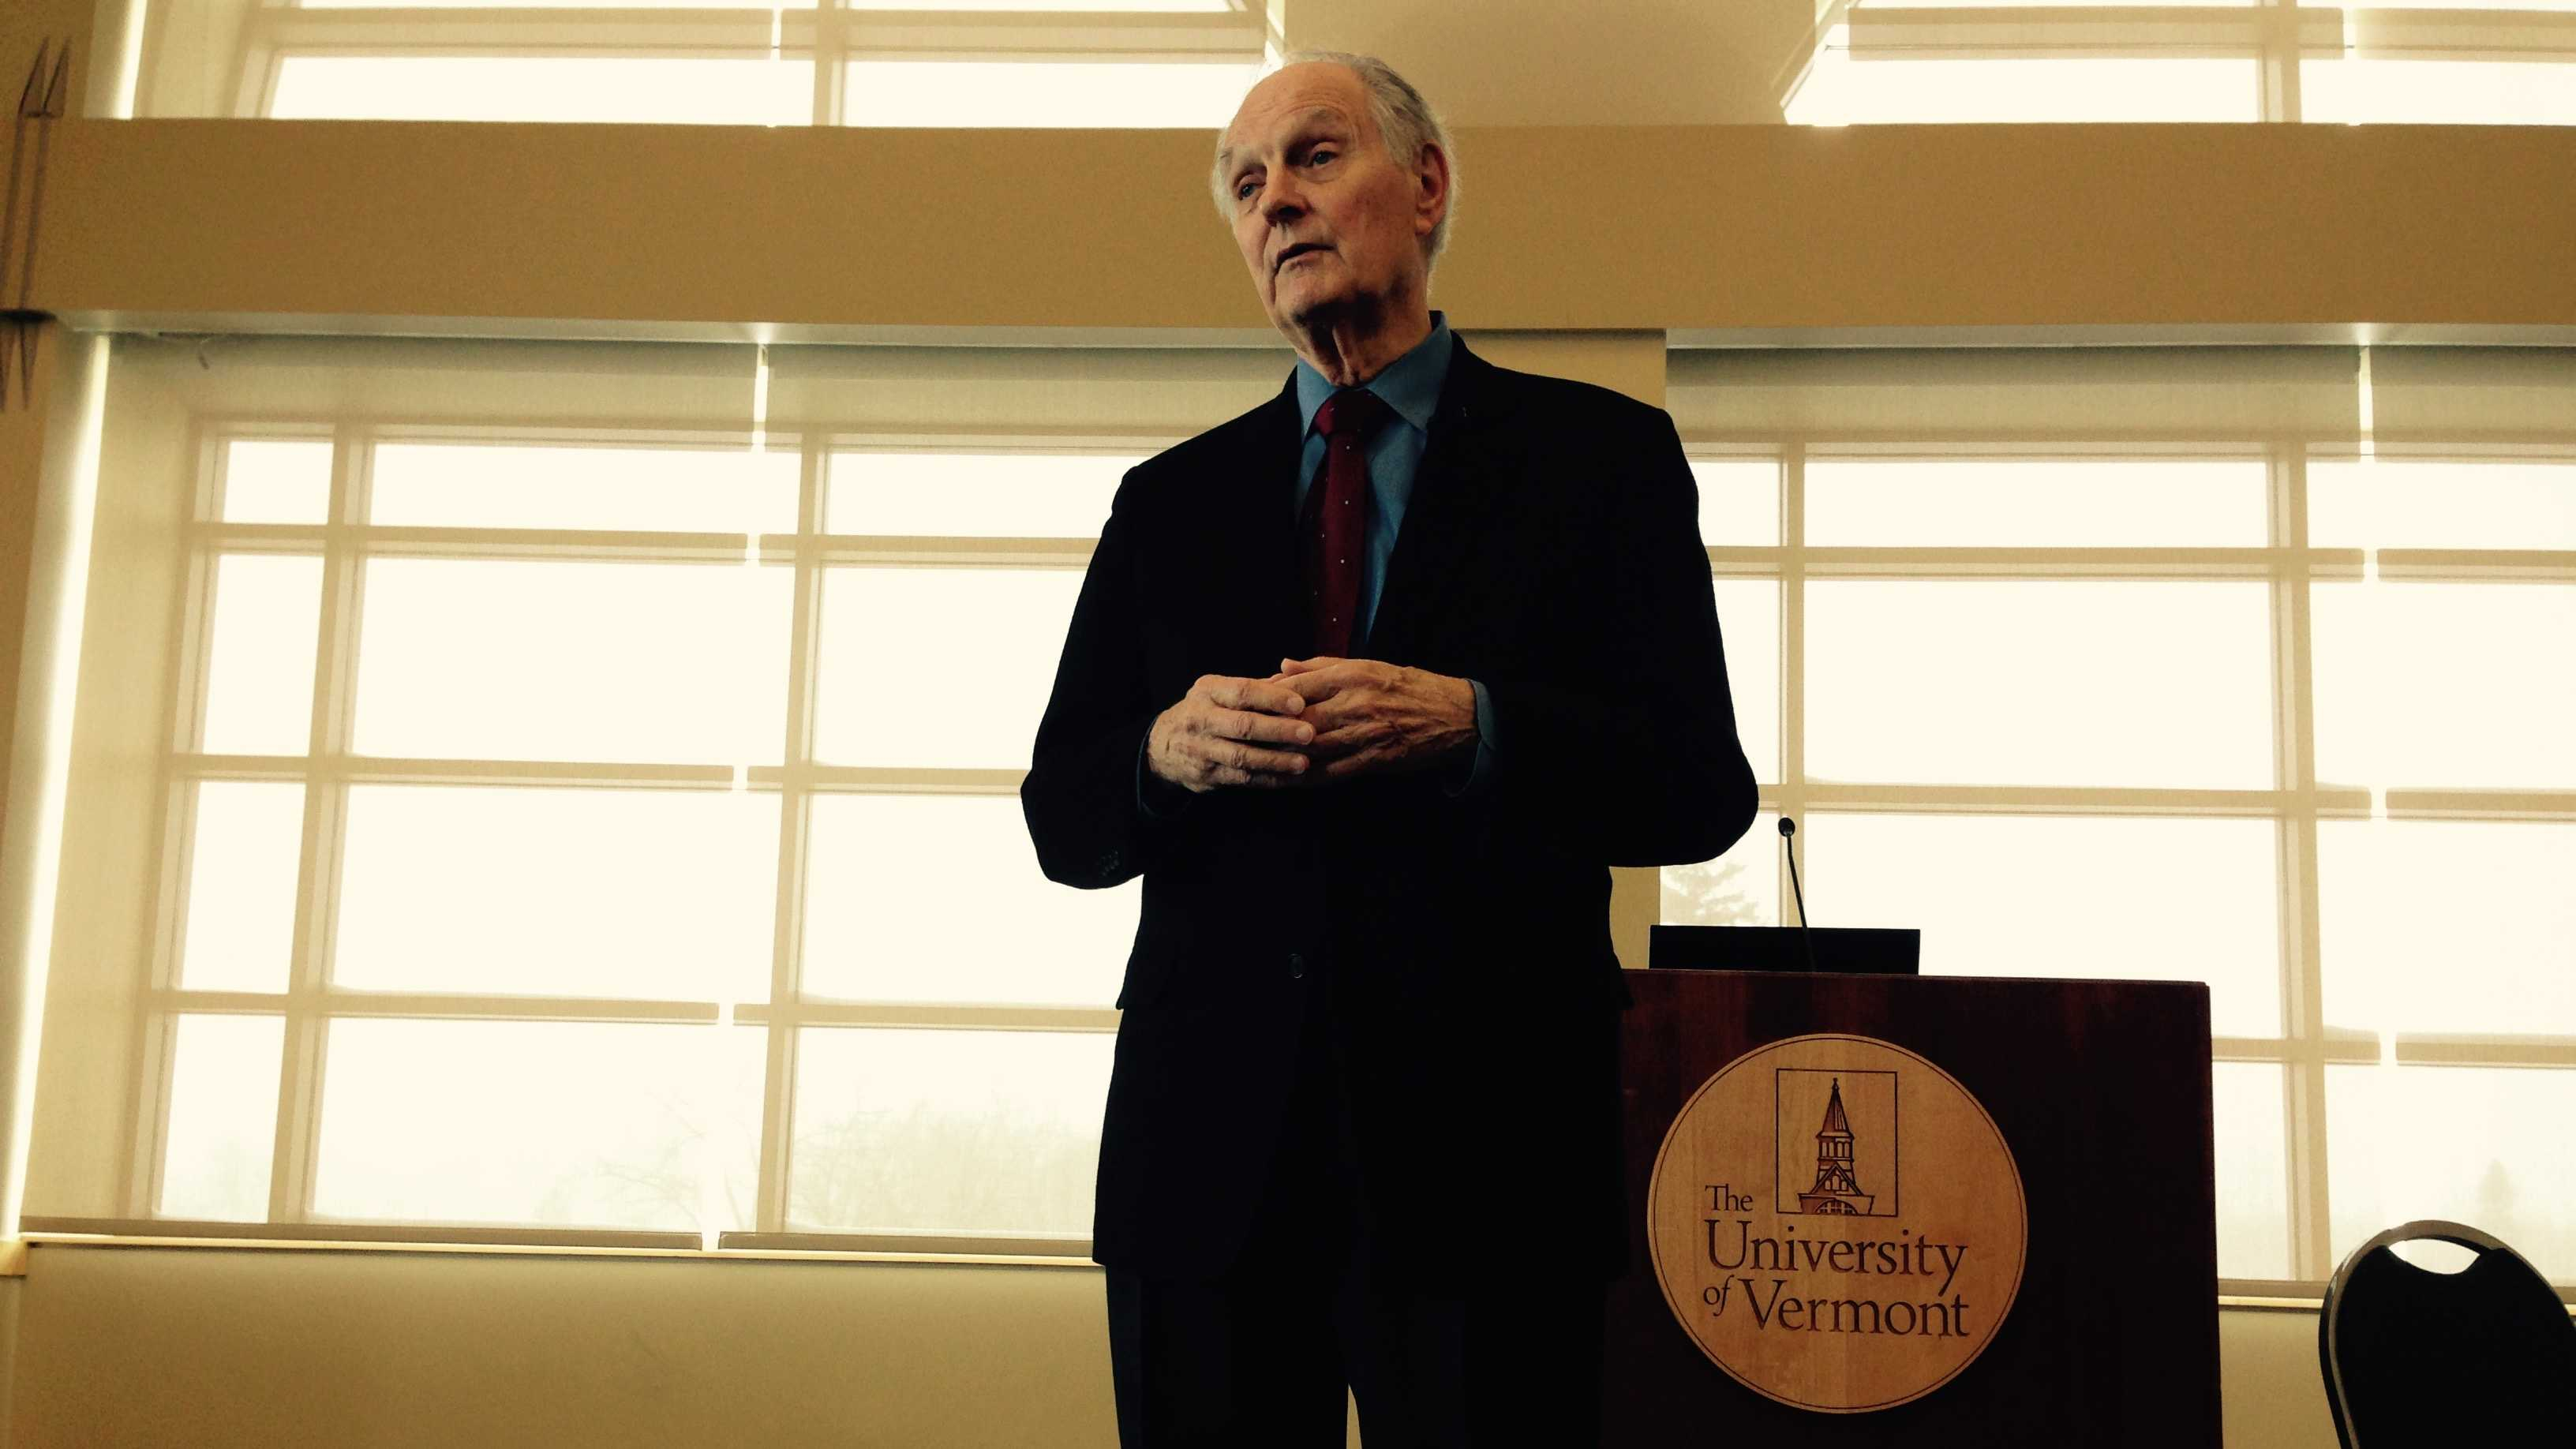 Veteran stage and screen actor Alan Alda is conducting a workshop for scientists at the University of Vermont.